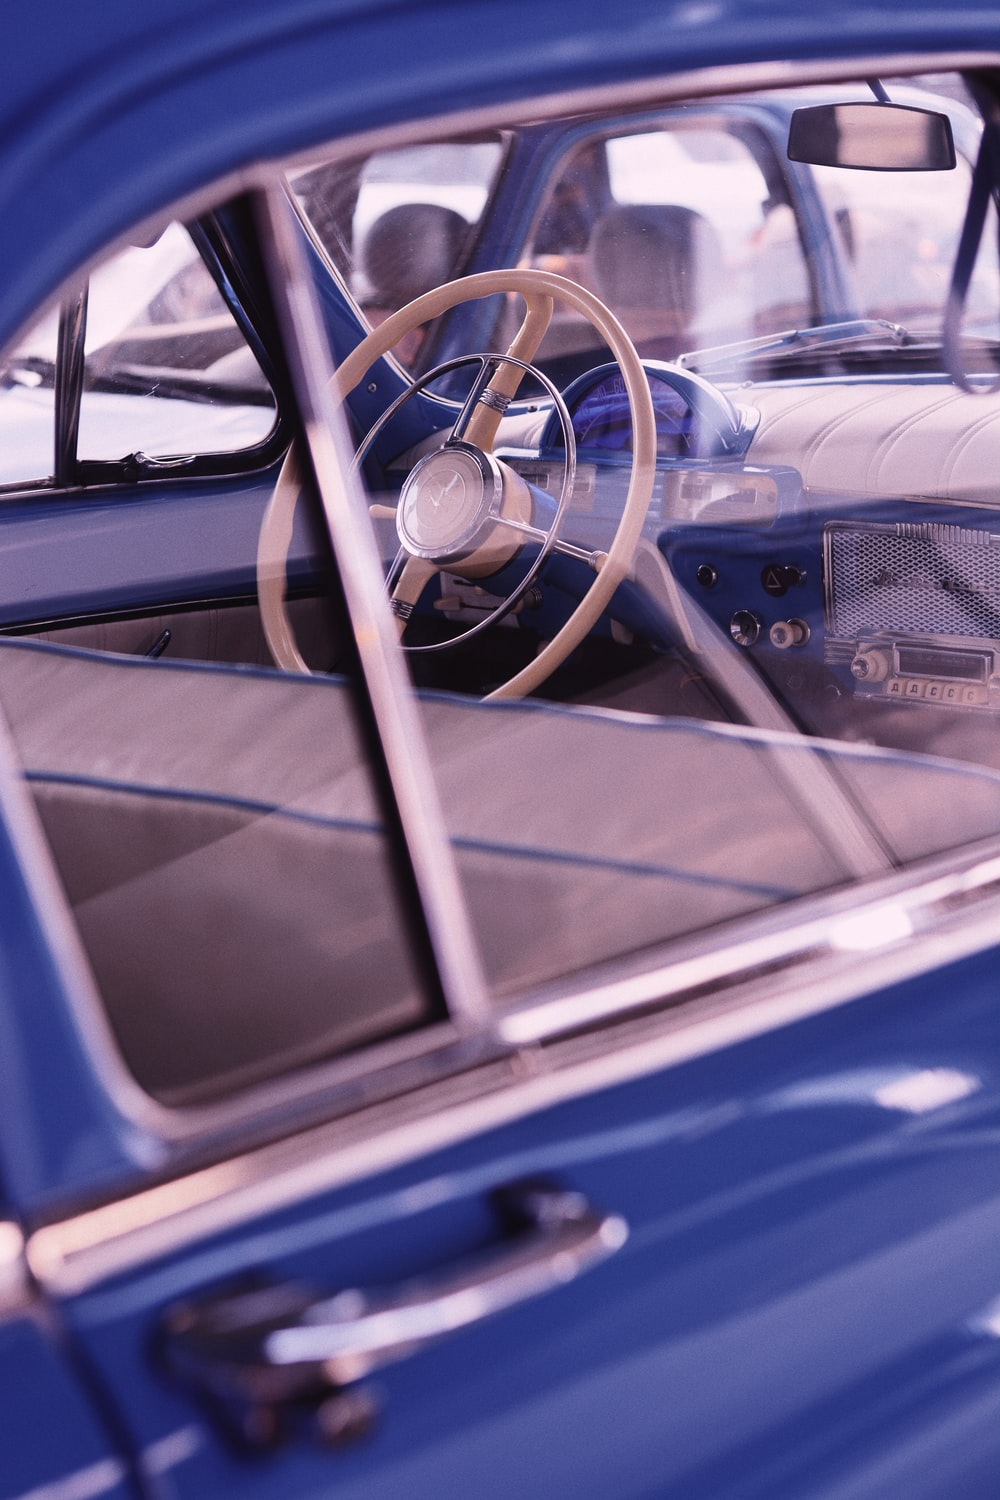 Car Interior Glass And Window Hd Photo By Dmitry Bayer